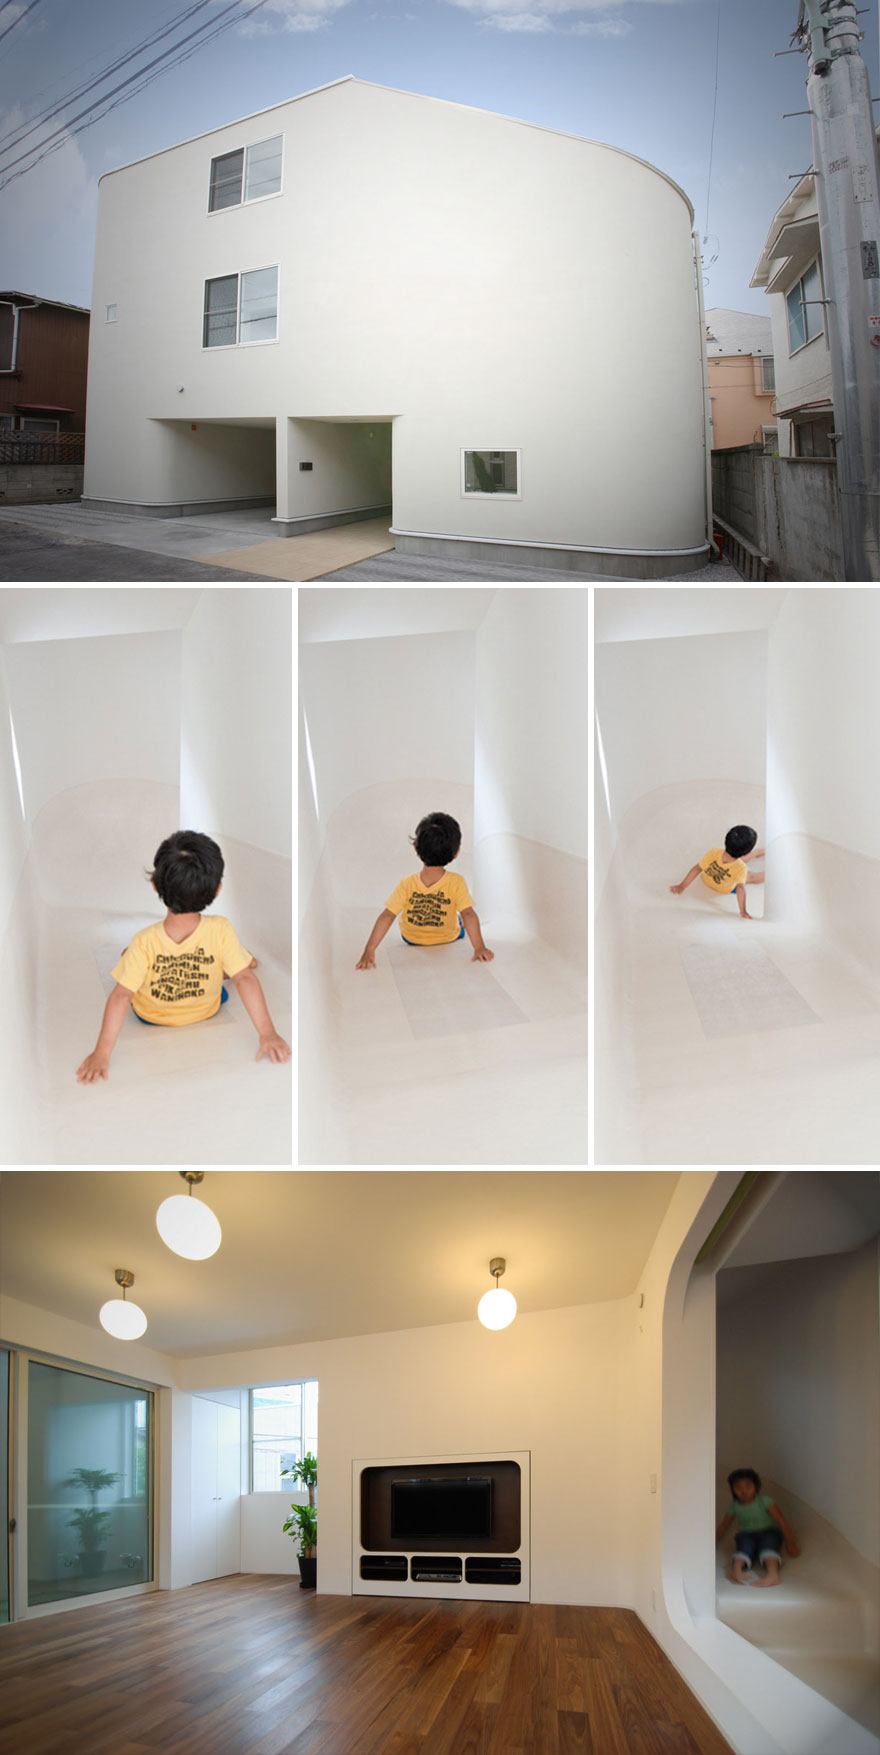 Slide House insolite au Japon